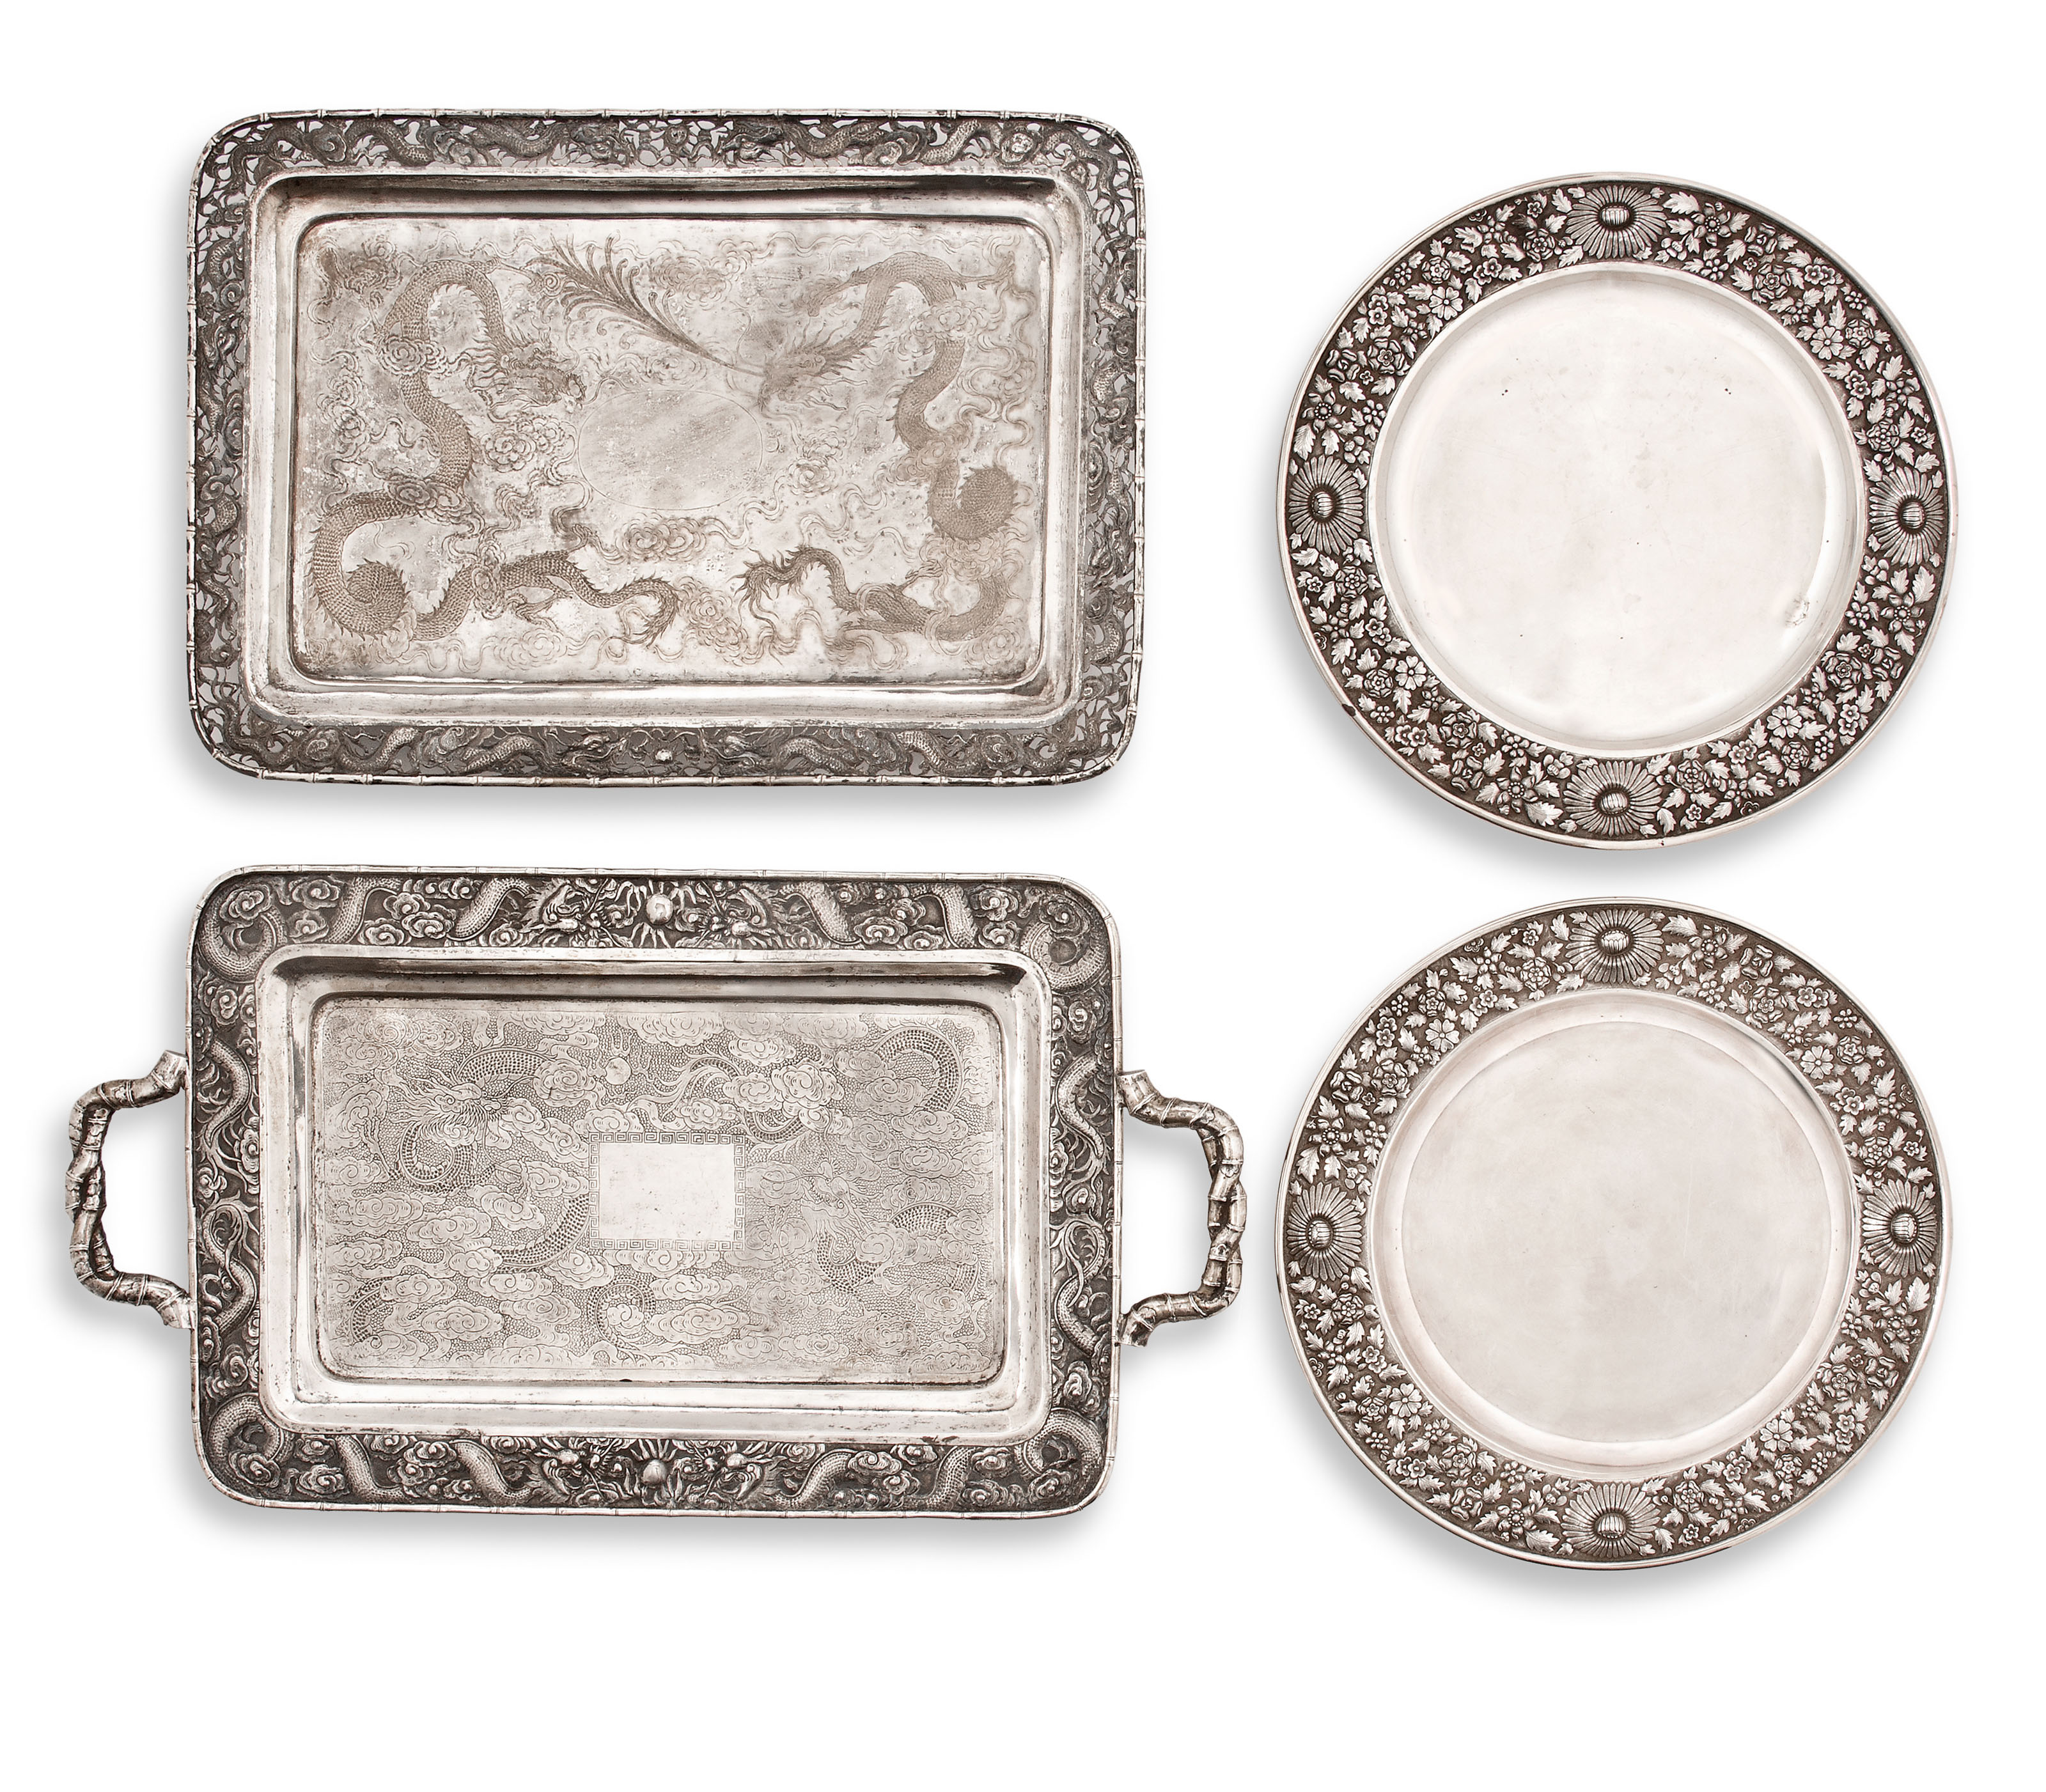 A PAIR OF SILVER FLORAL DISHES